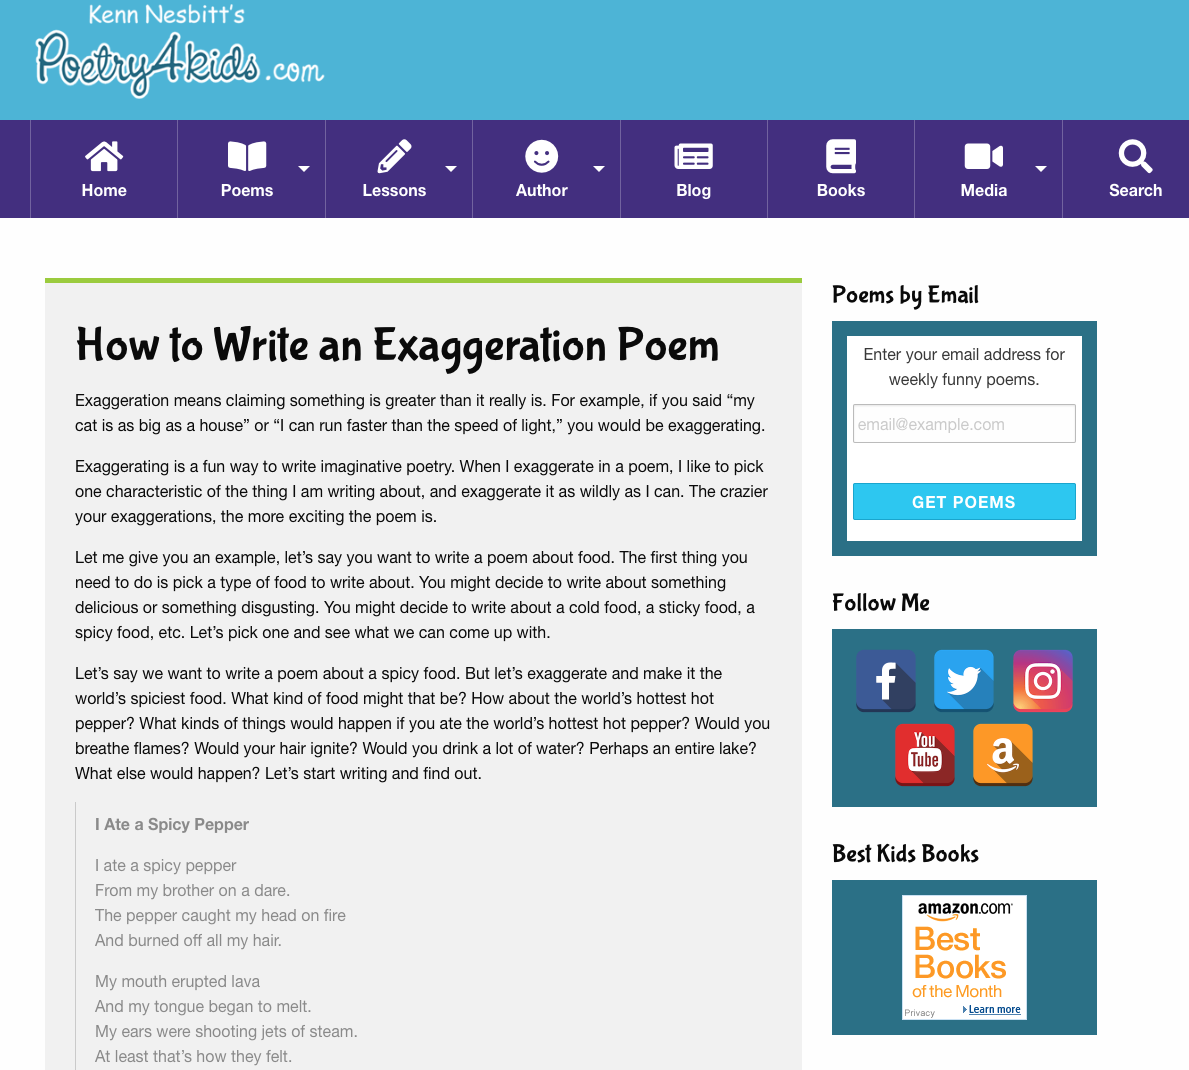 How To Write An Exaggeration Poem Activities Project For